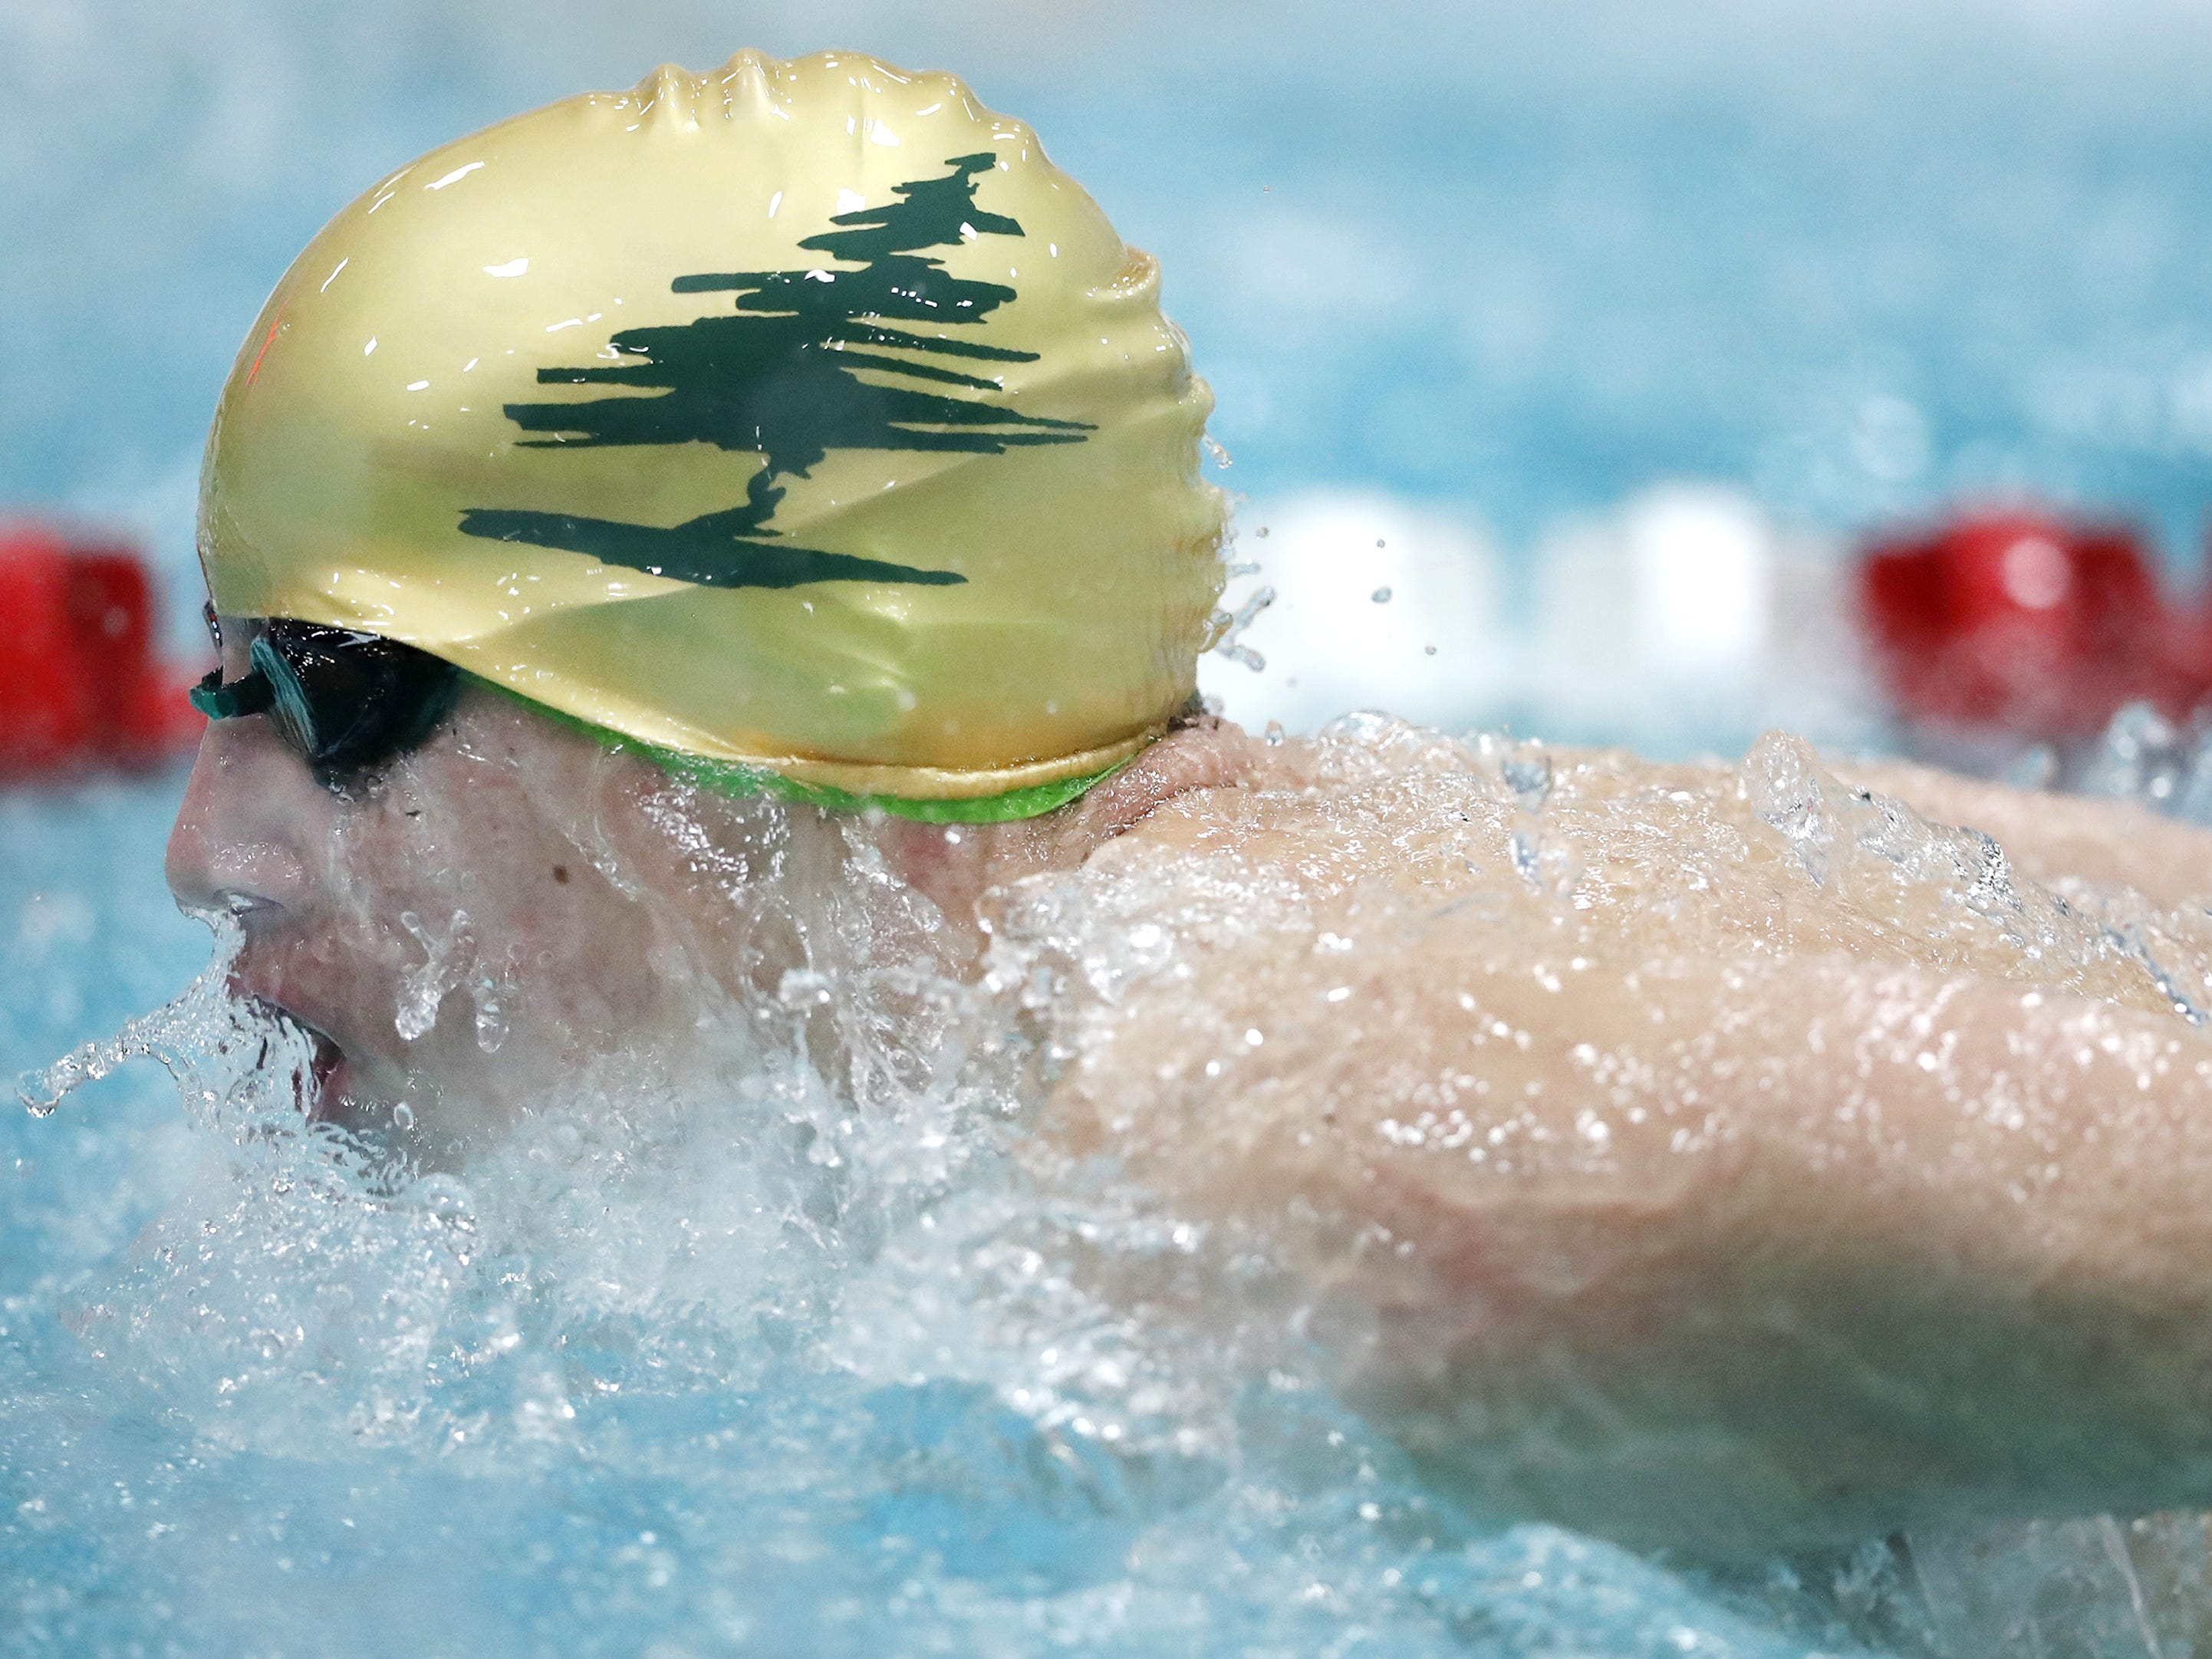 D.C. EverestÕs Ben Halambeck races in the 200 yard individual medley during the Division 1 2019 State Boys Swimming and Diving Championships Saturday, Feb. 16, 2019, at the UW Natatorium in Madison, Wis. Danny Damiani/USA TODAY NETWORK-Wisconsin